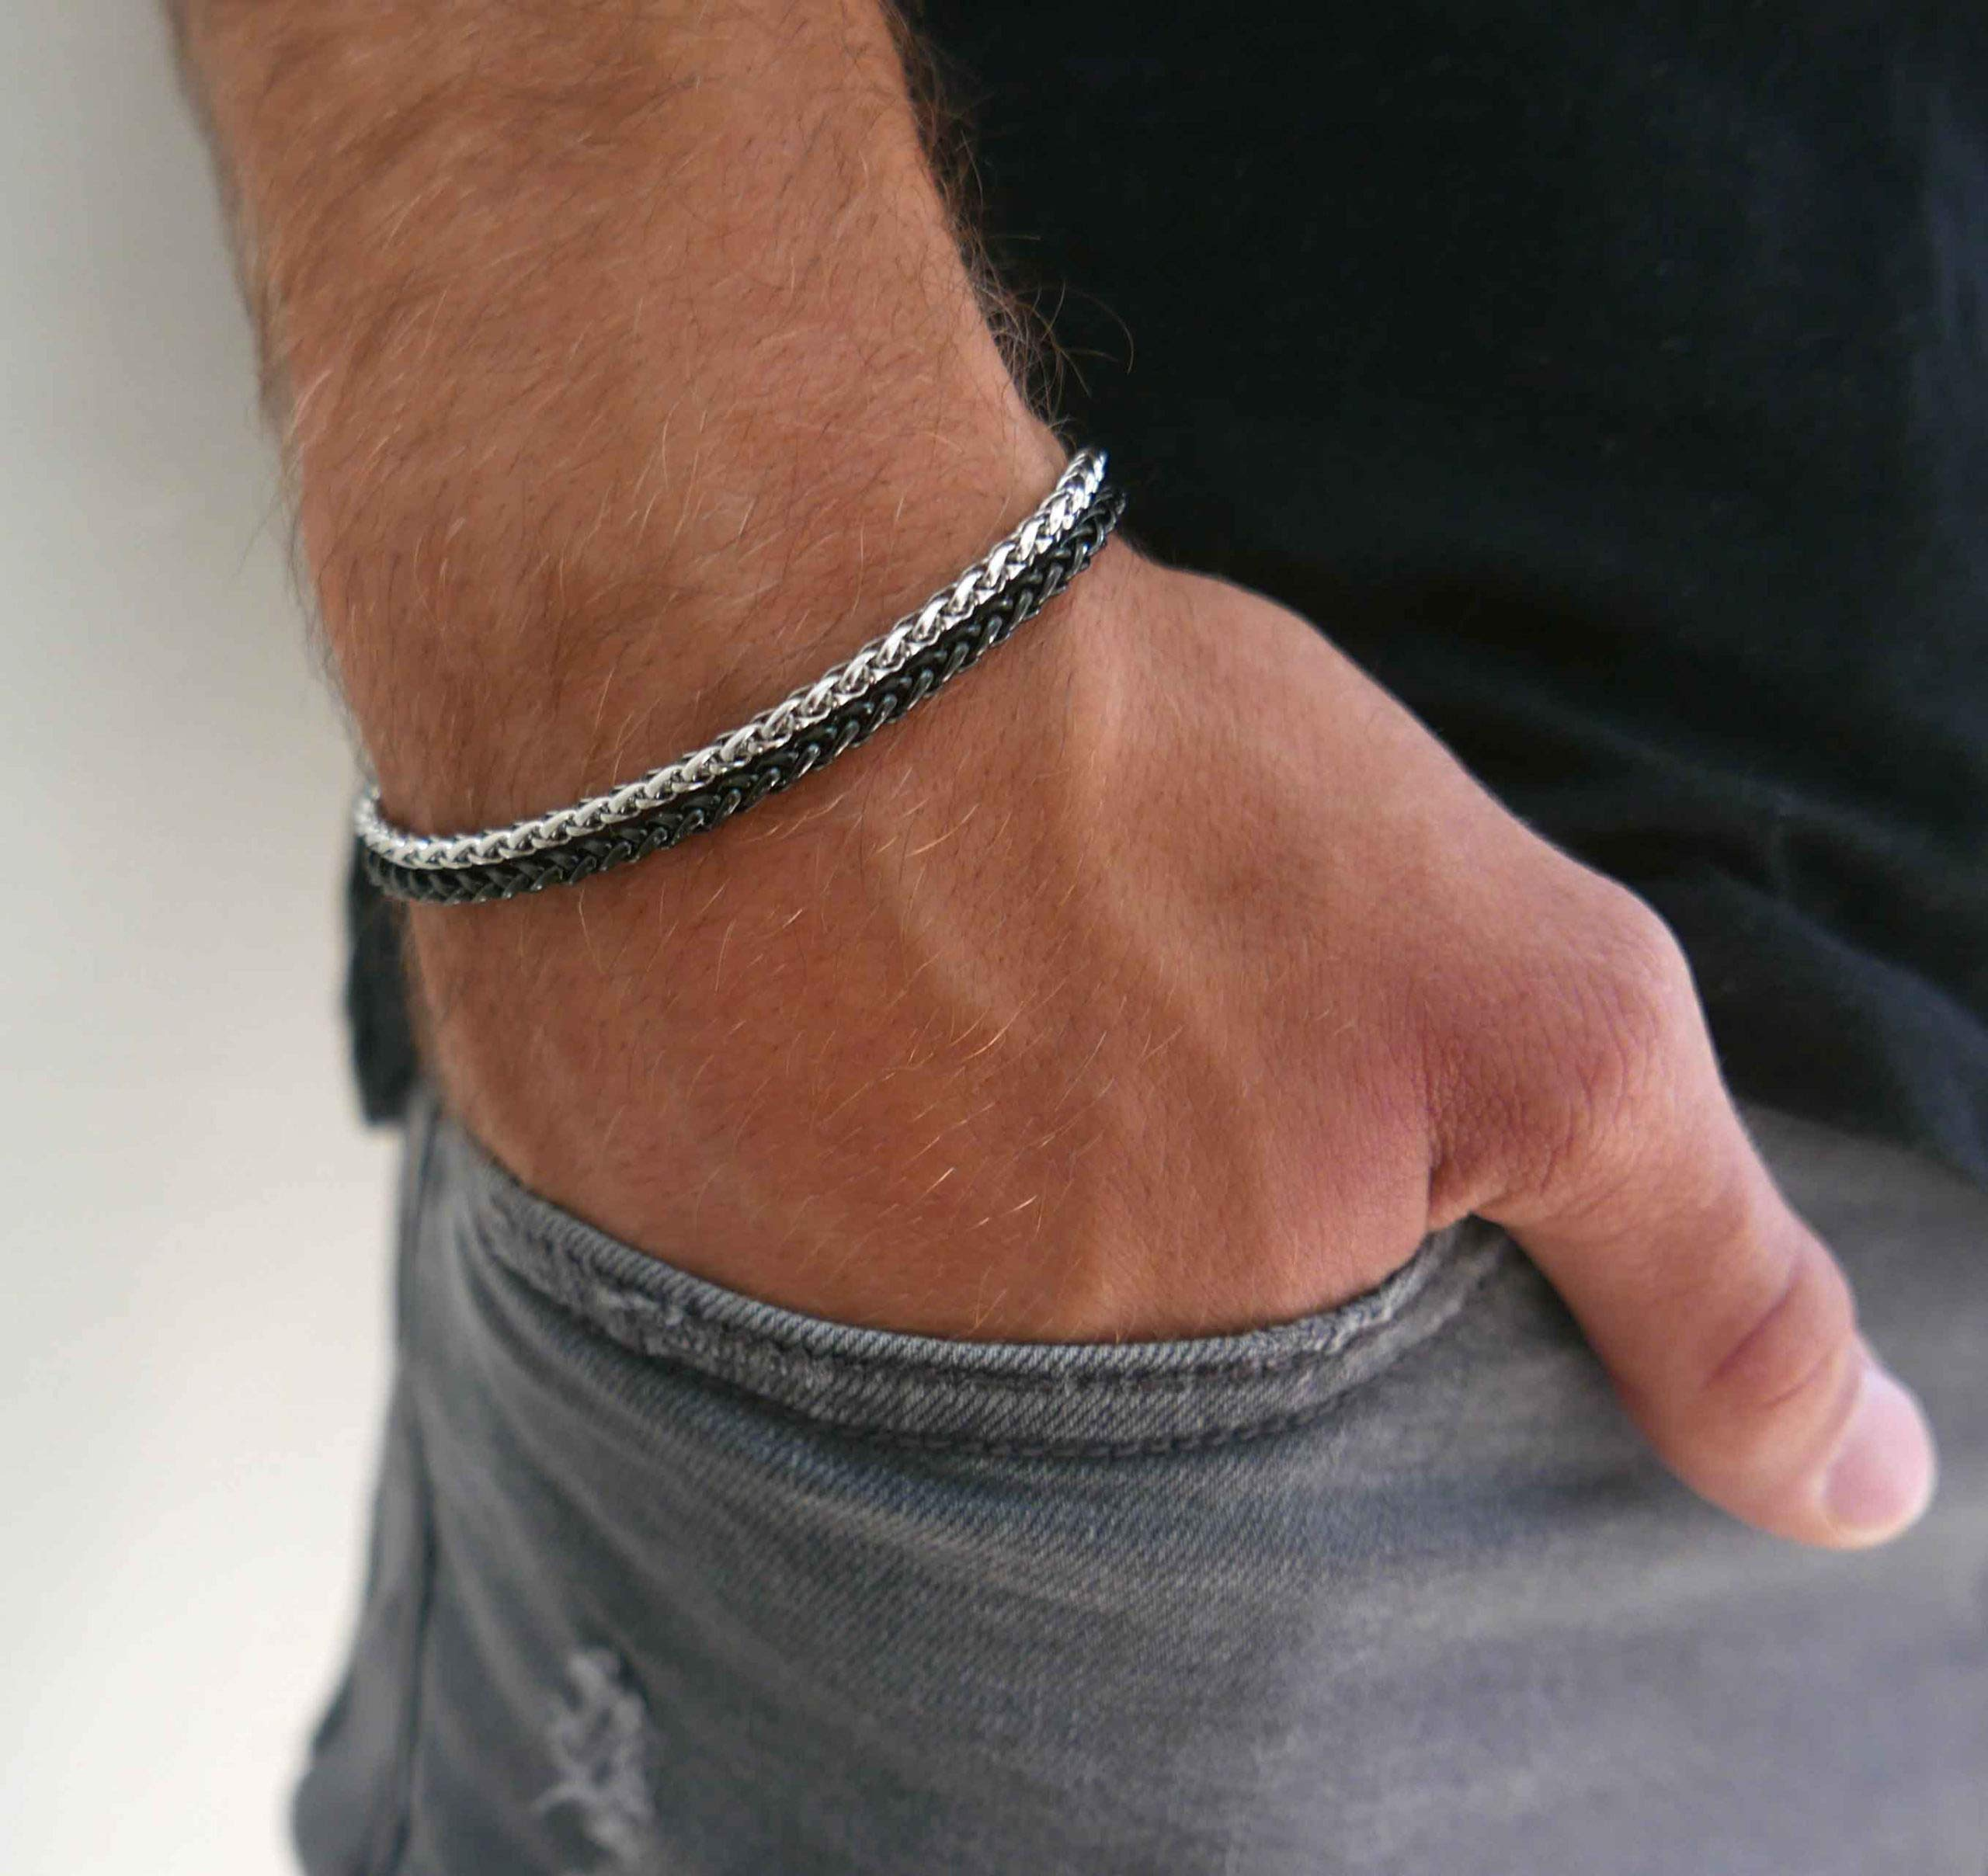 """Handmade Cuff Chain Bracelet For Men Made Of Stainless Steel By Galis Jewelry - Silver Bracelet For Men - Cuff bracelet For men - Jewelry For Men - Fits 7""""-8"""" Wrist Sizes"""